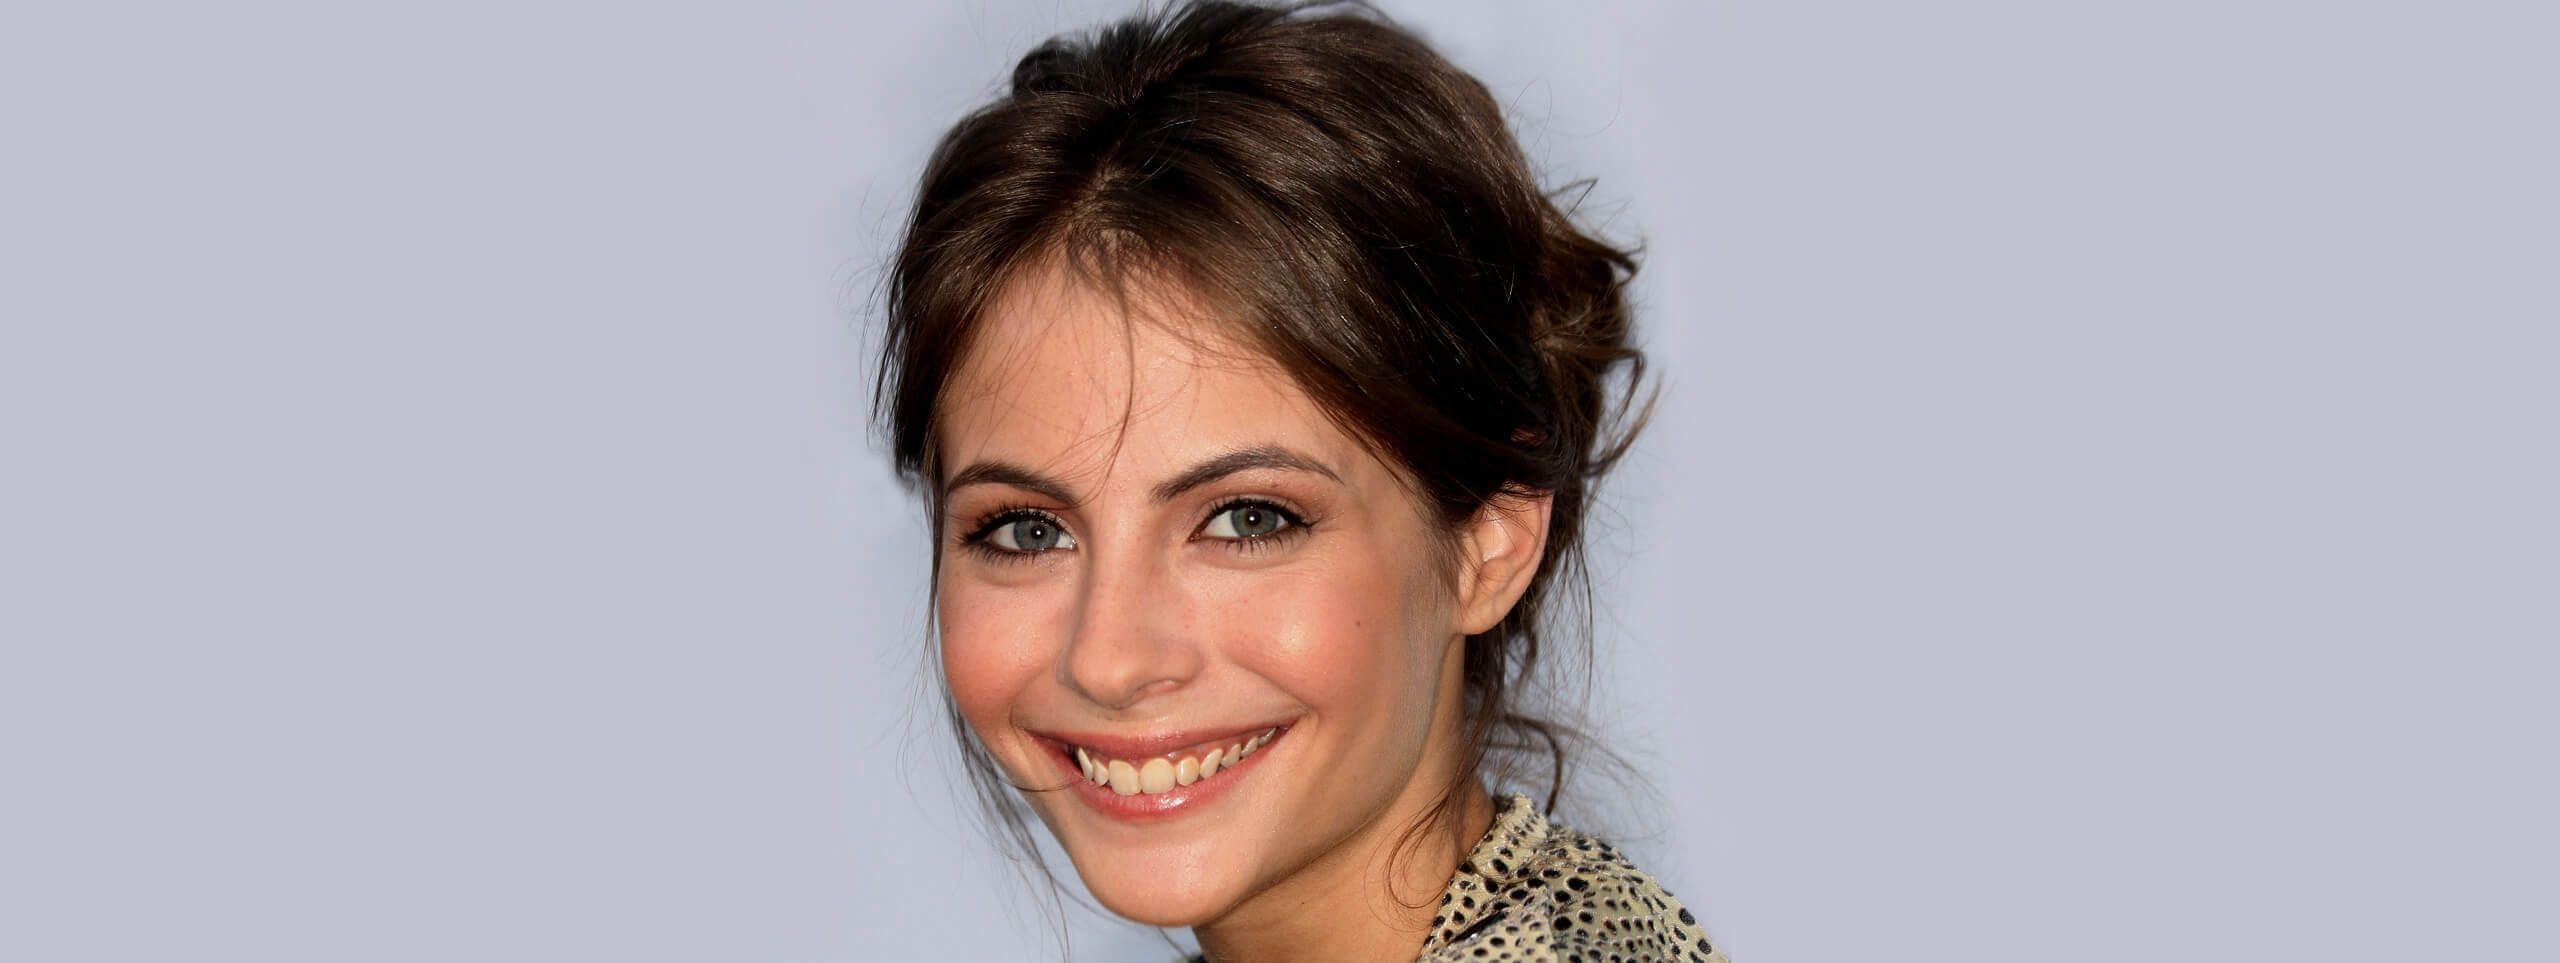 Smiling woman with an updo hairstyle